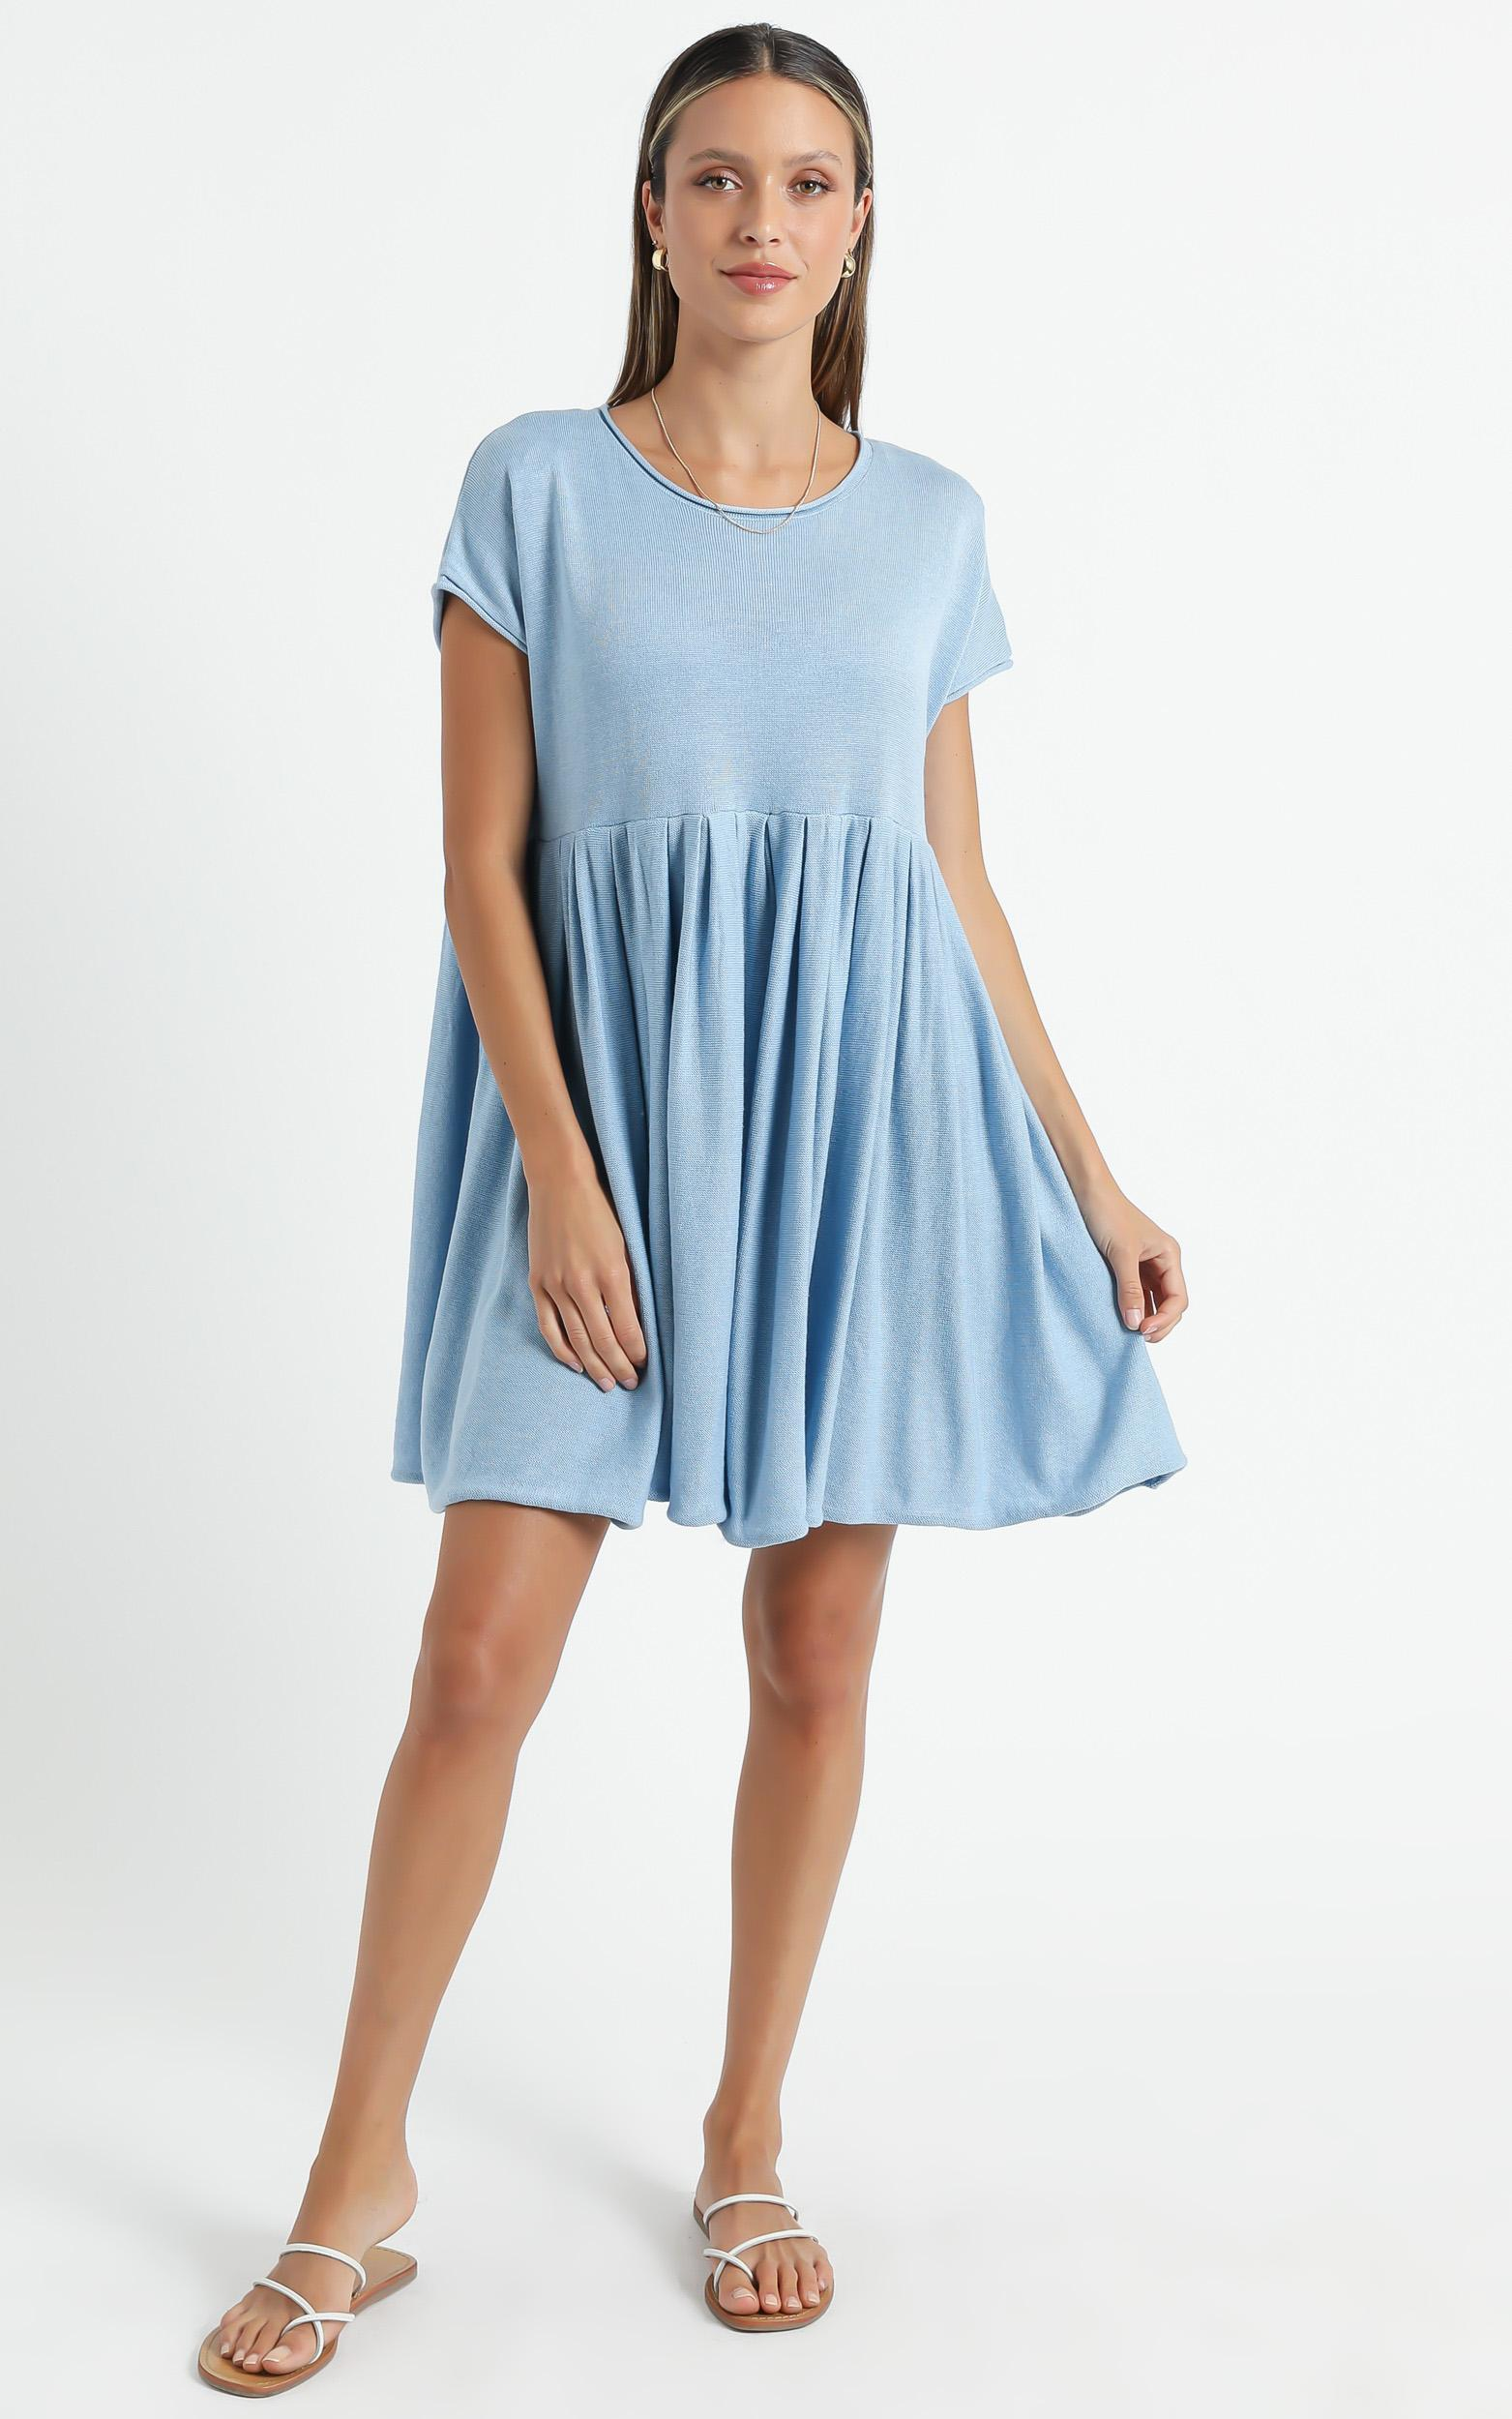 Embry Knit Dress in Powder Blue - 6 (XS), BLU1, hi-res image number null